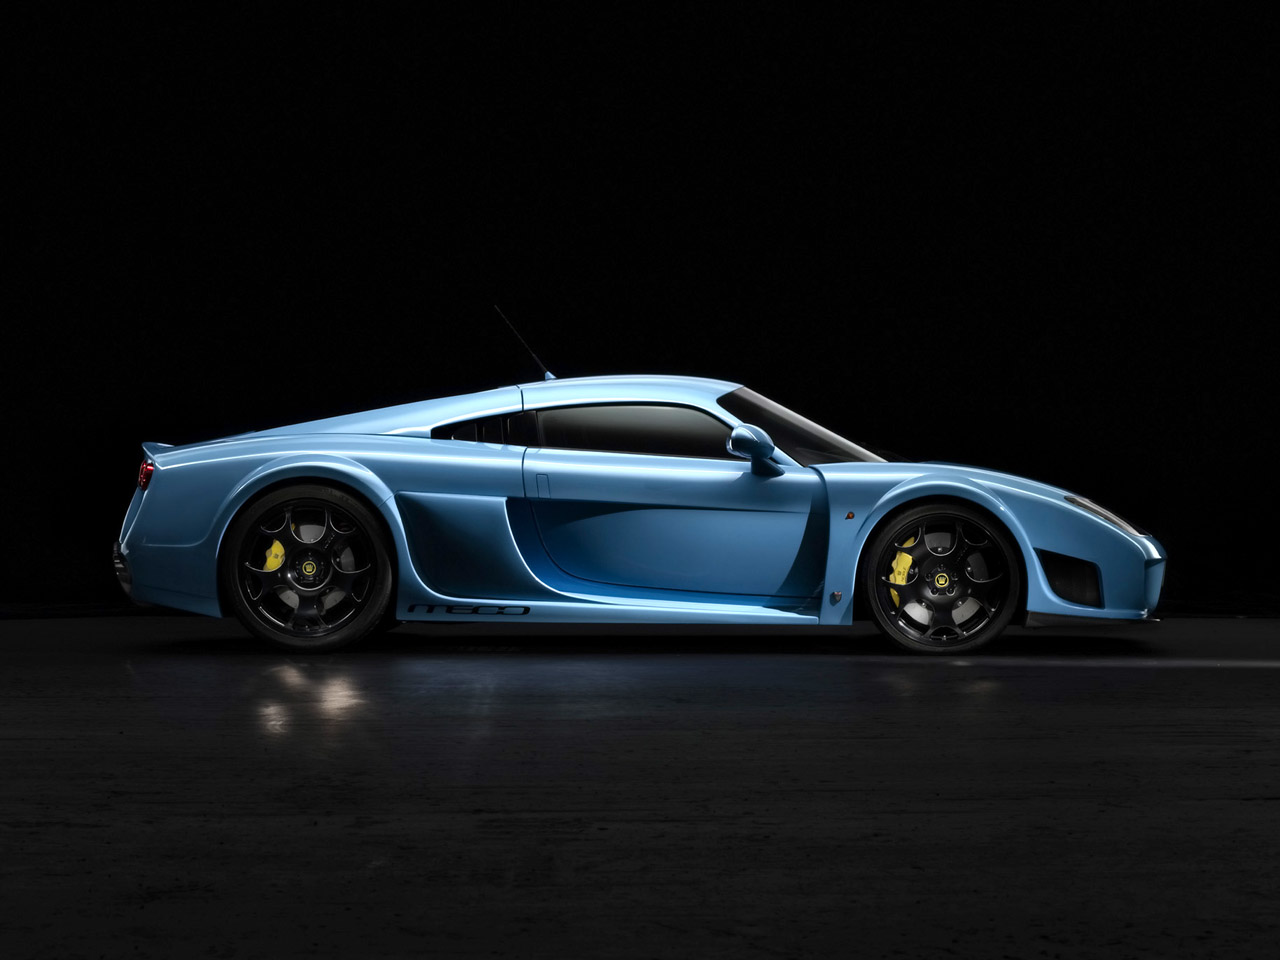 Wallpaper Gambar Mobil Sport: 2010 Noble M600 With Twin-Turbo V8